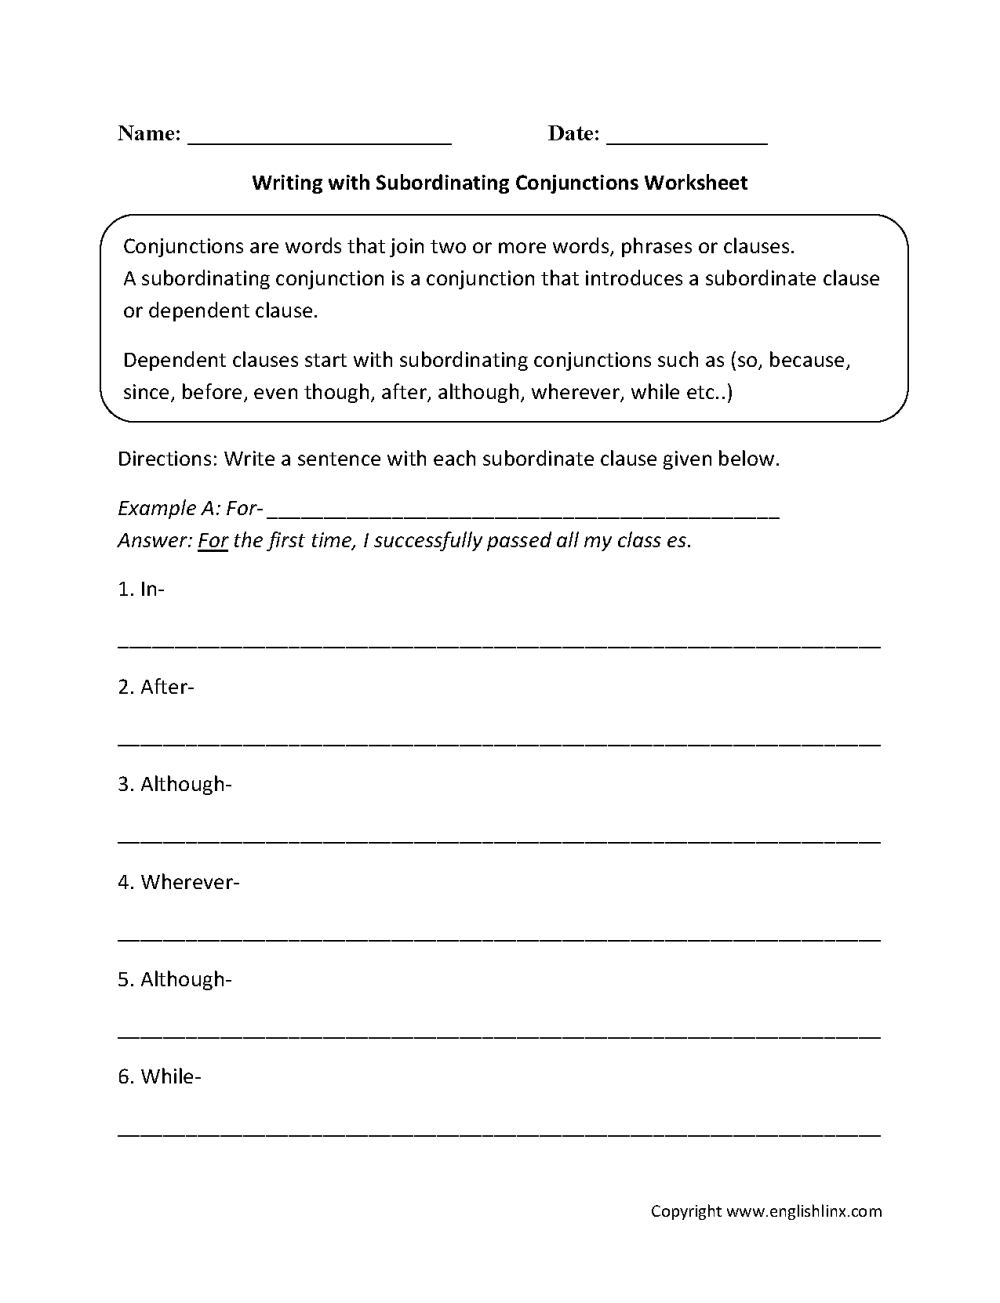 medium resolution of Englishlinx.com   Conjunctions Worksheets